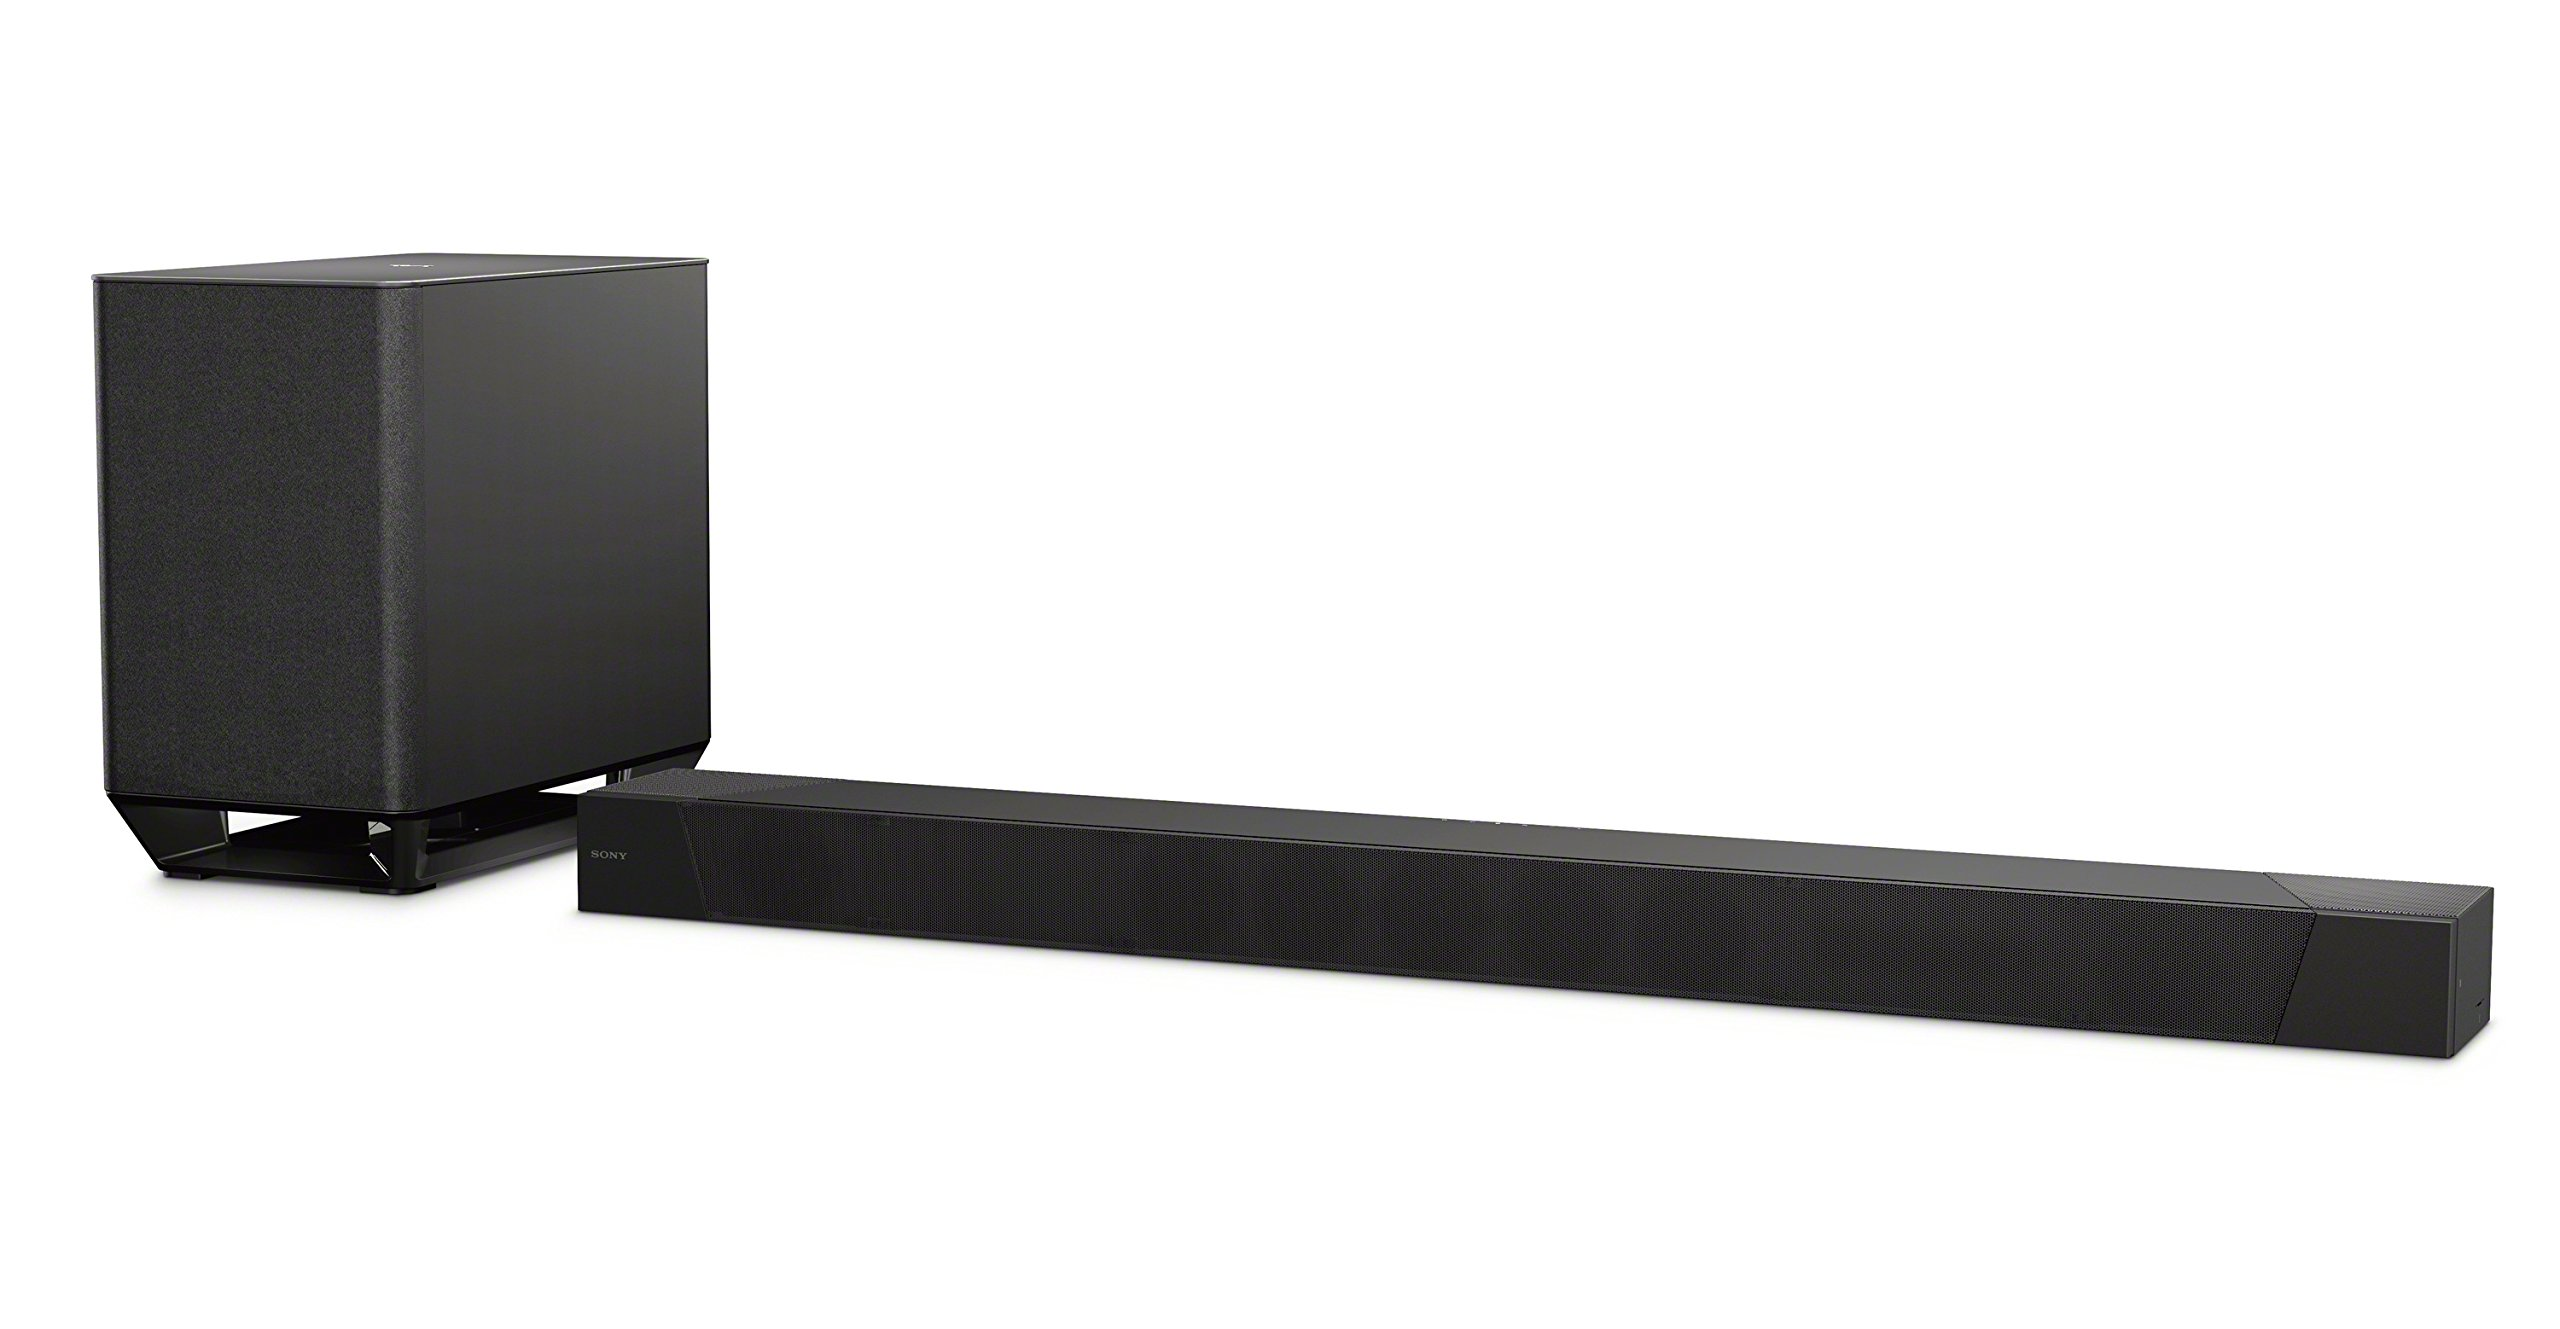 Sony HT-ST5000 7.1.2ch 800W Dolby Atmos Sound Bar (2017 model) by Sony